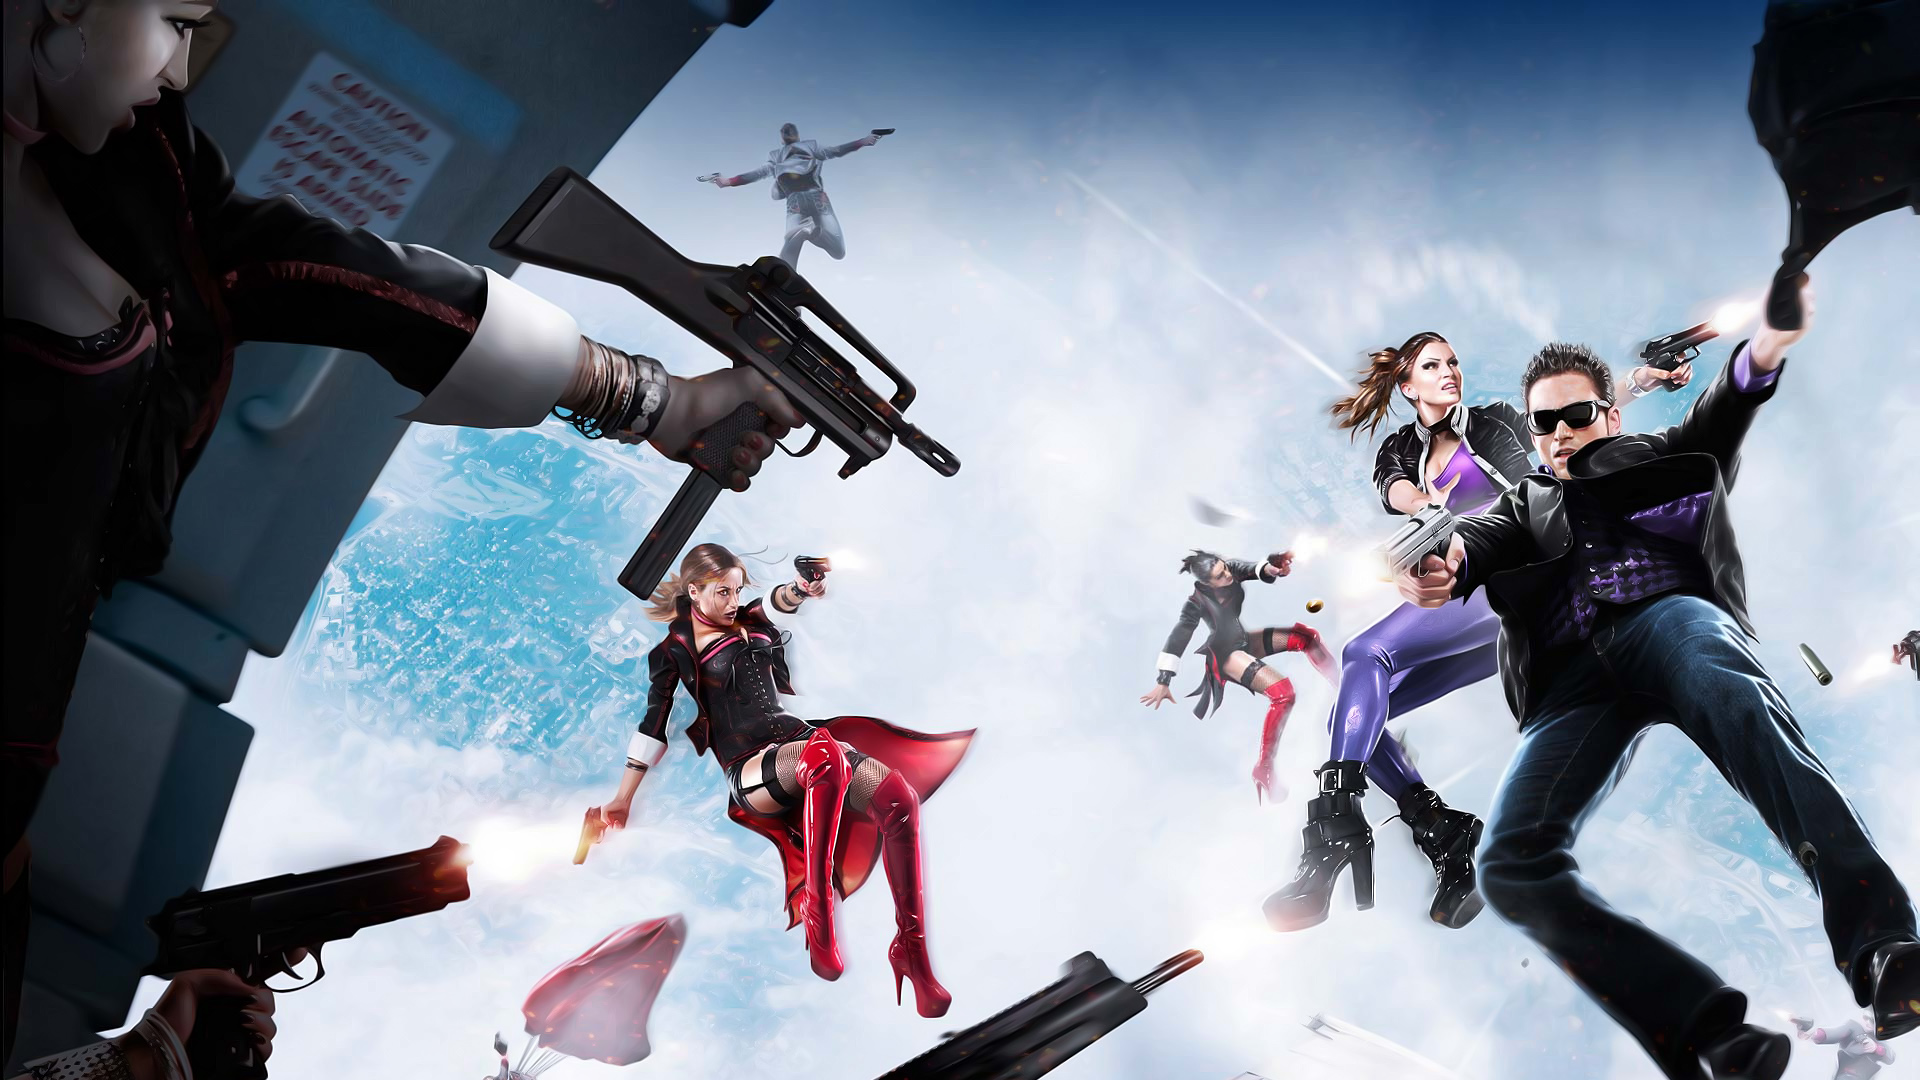 Saints row 3 game #4174163, 1920x1080 | all for desktop.